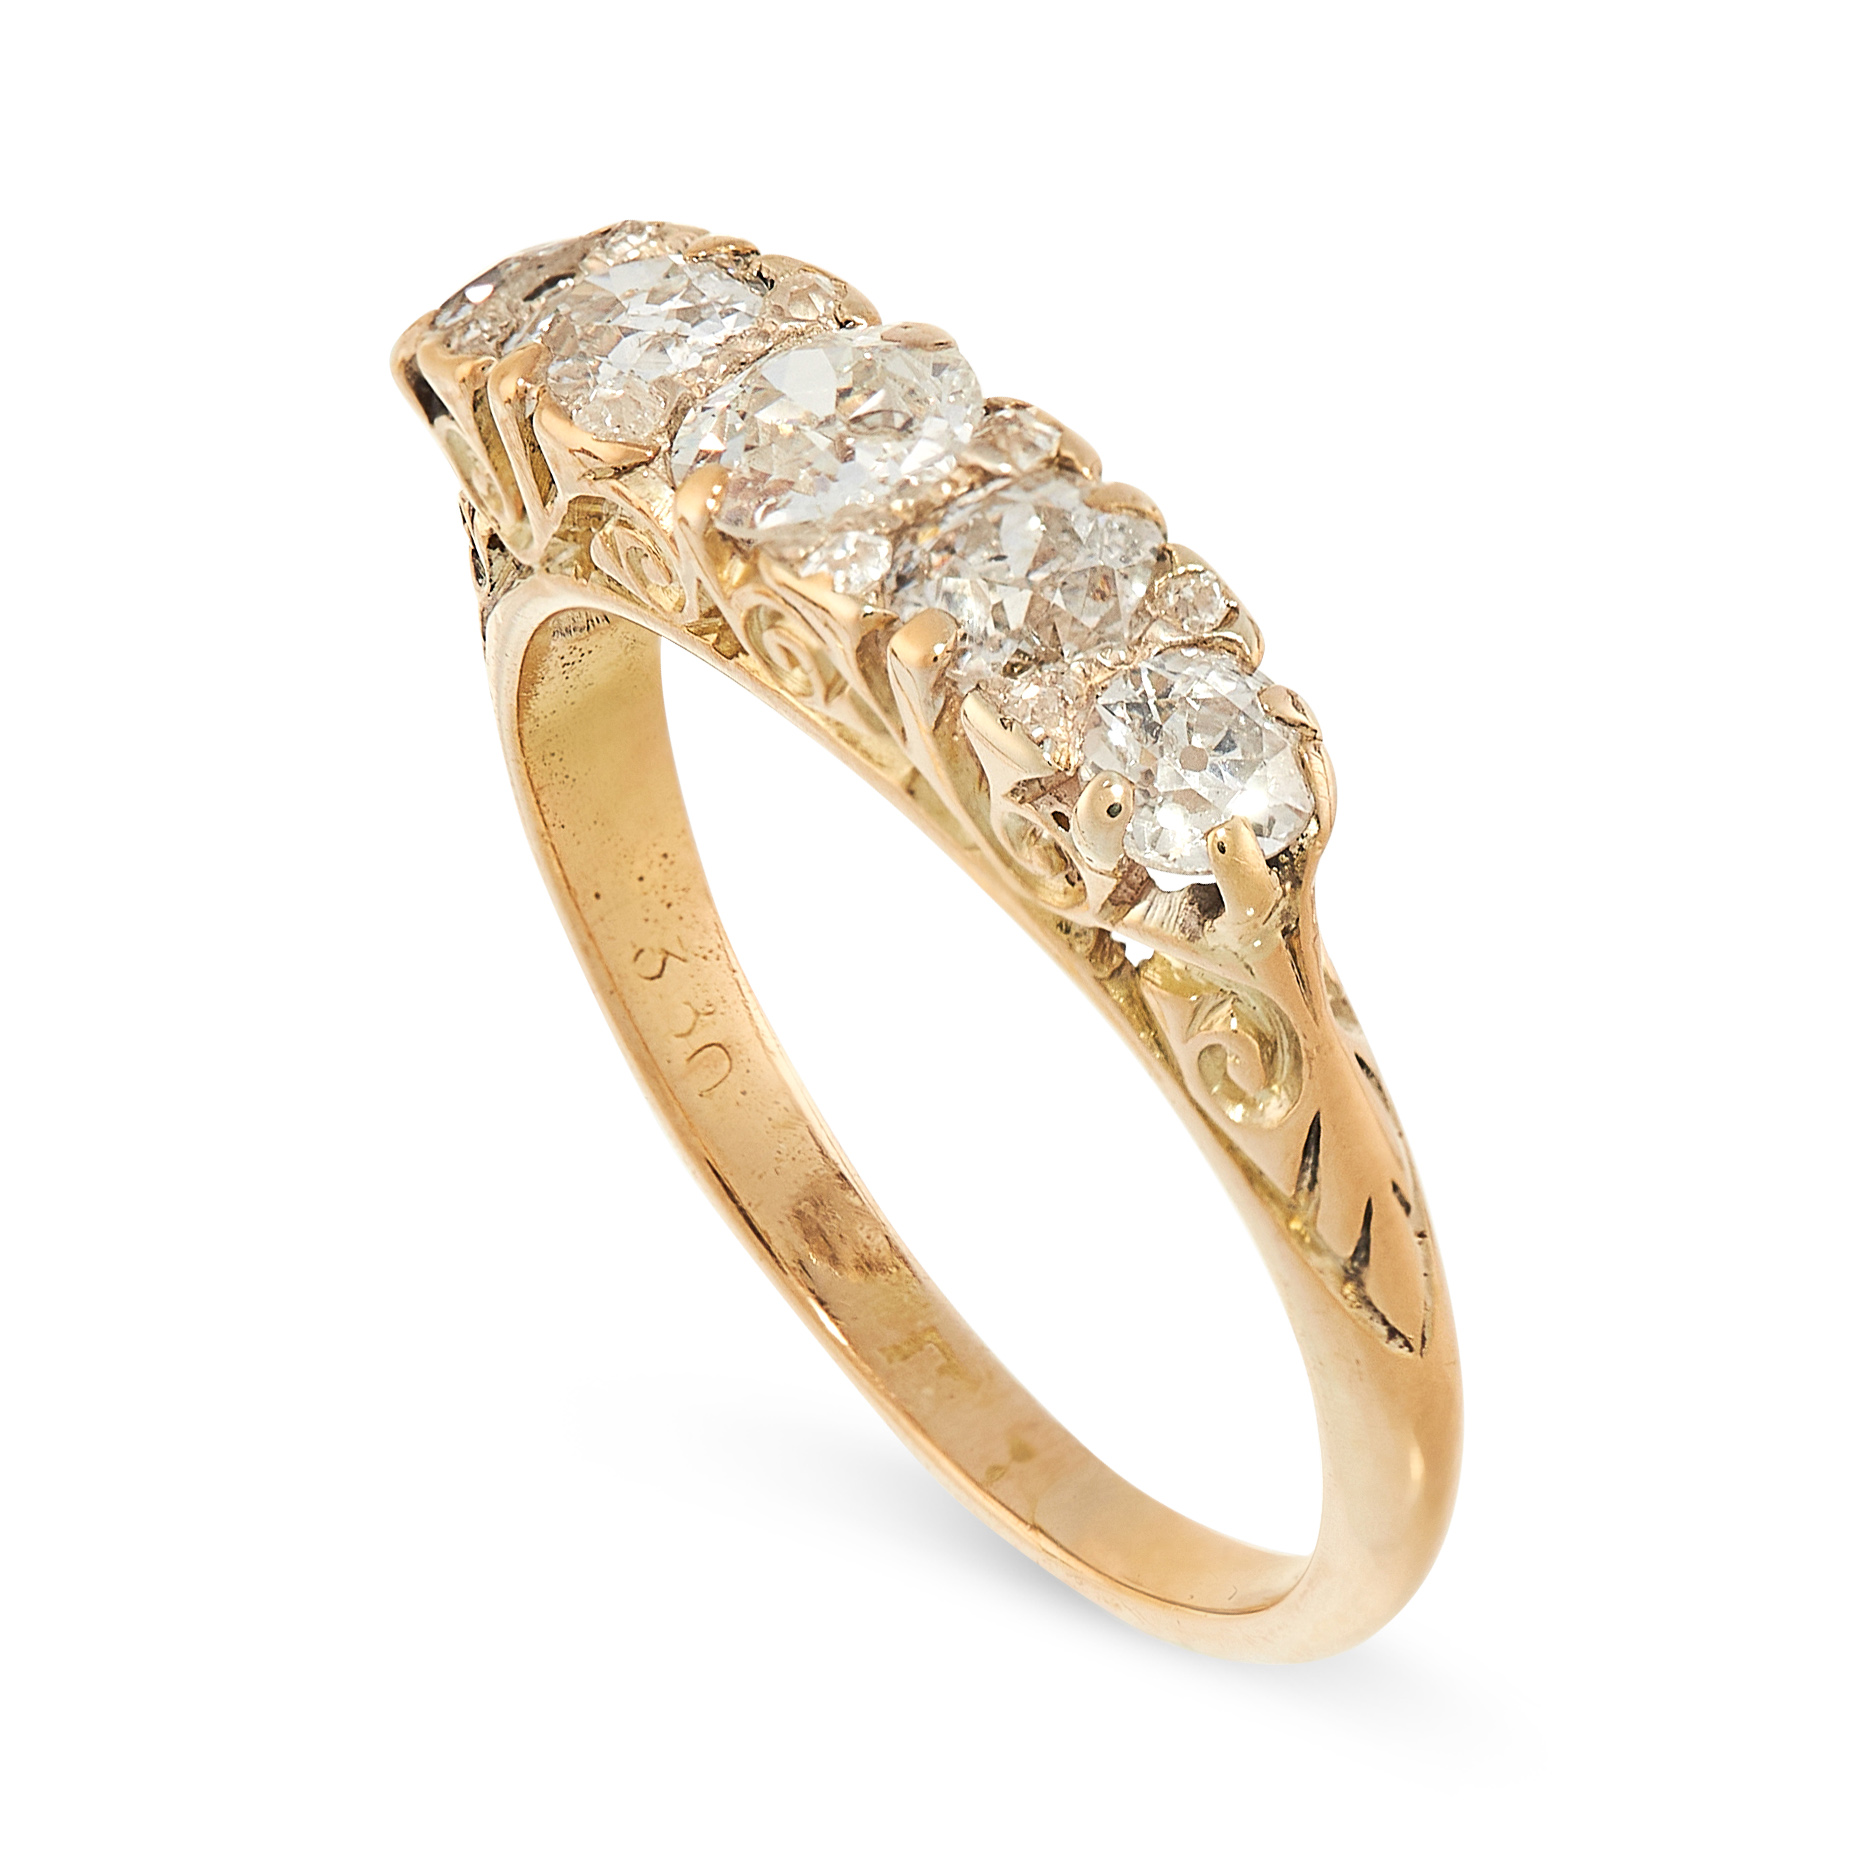 A DIAMOND FIVE STONE RING in 18ct yellow gold, the band set with five graduated old cut diamonds - Image 2 of 2